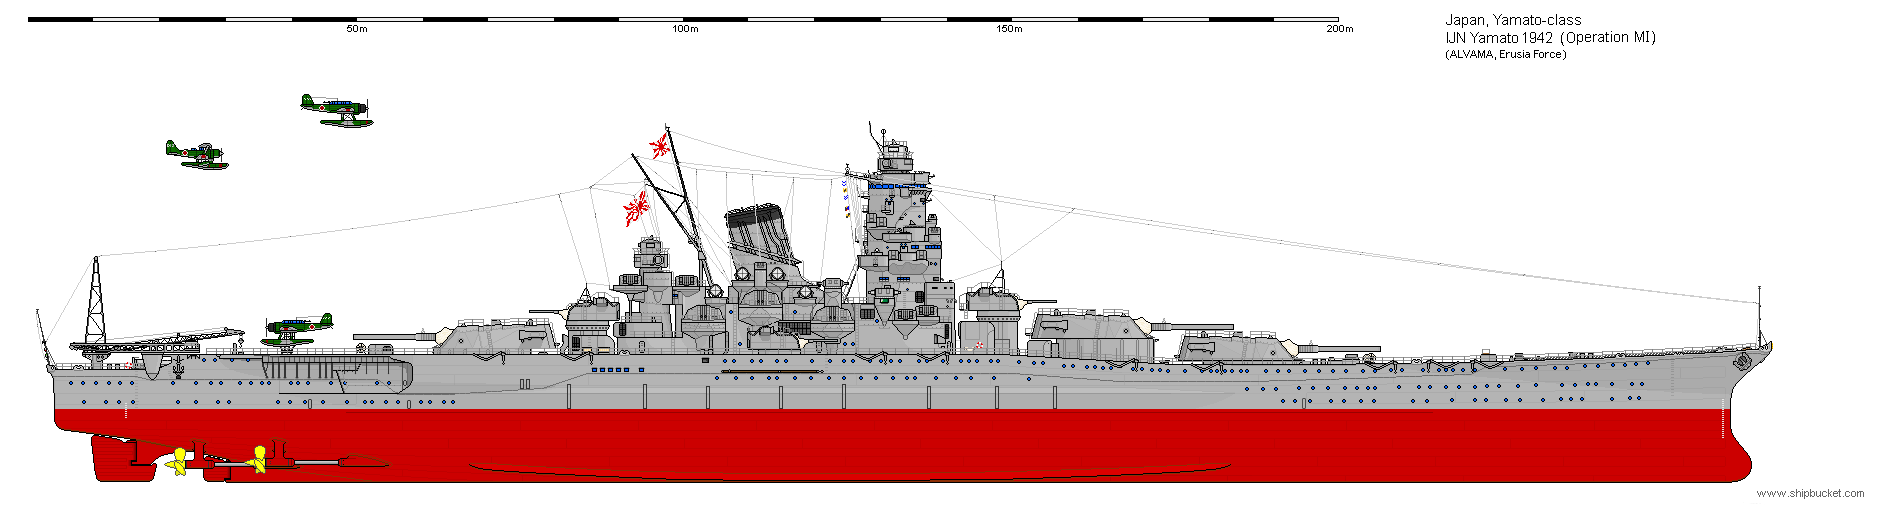 hight resolution of leyte imperial japanese navy musashi battleship military history wwii charts